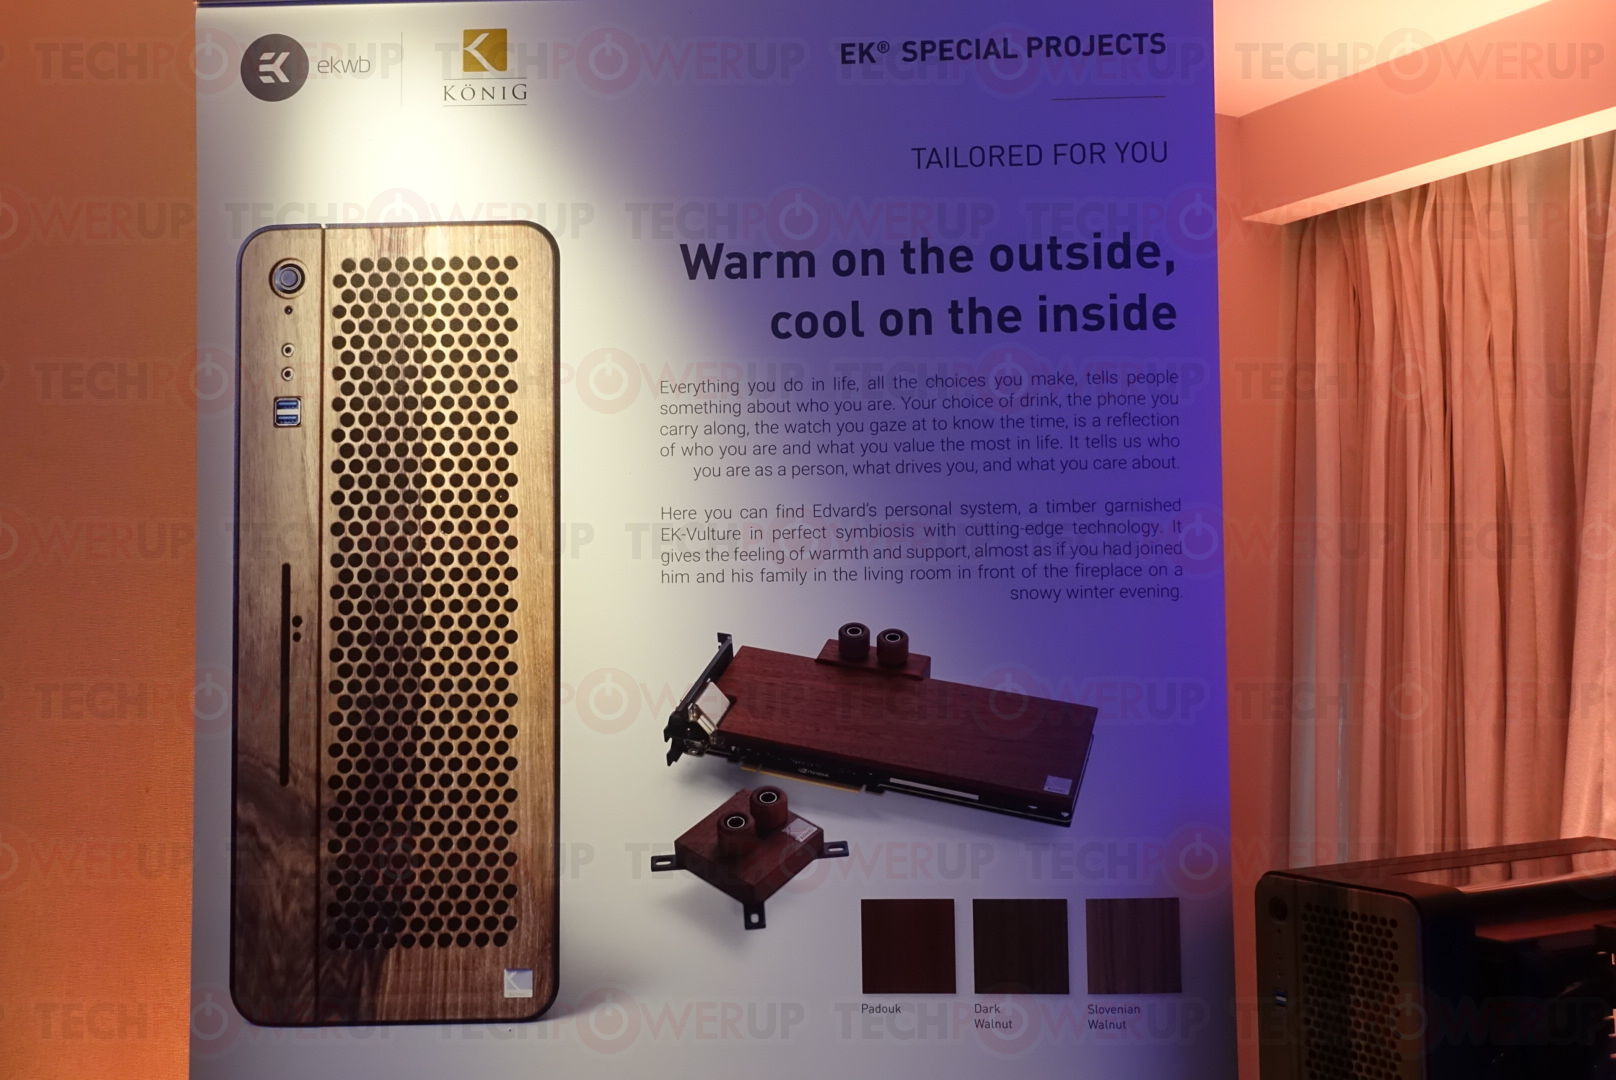 ekwb s r d team shows new concepts for pc cooling techpowerup